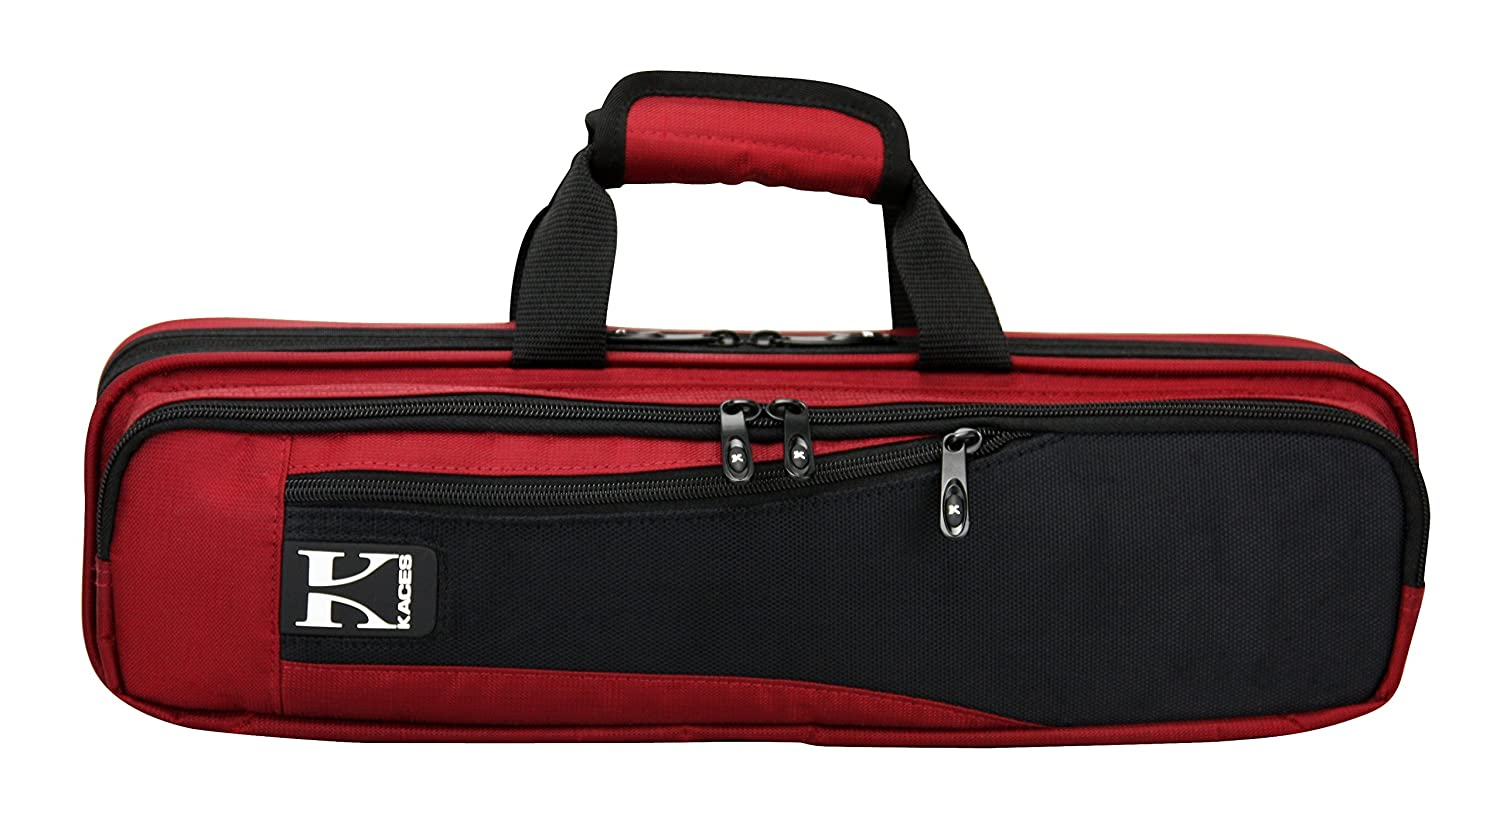 Kaces KBF-RFL4 Polyfoam Lightweight Flute Case, Red KBFR-FL4